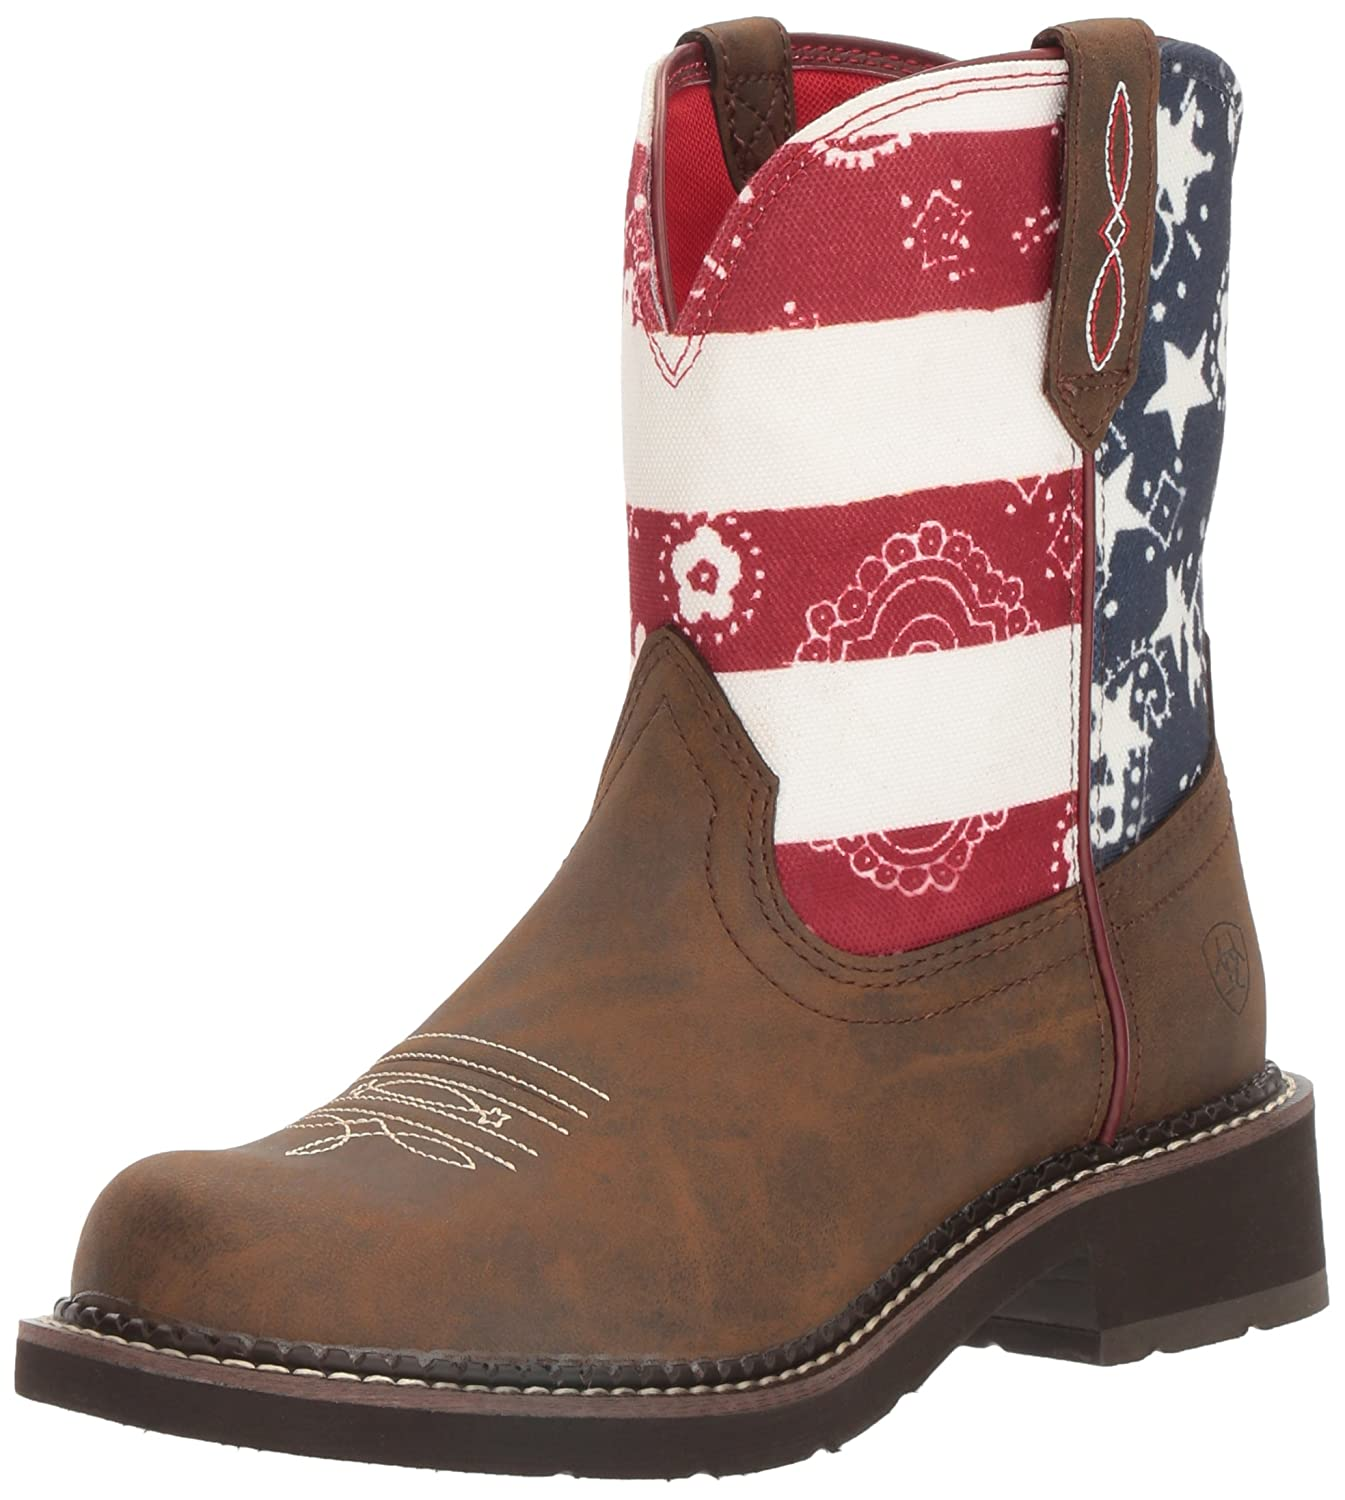 Ariat Women Women's Fatbaby Collection Western Cowboy Boot B01L98UIJ4 7.5 B(M) US|Toasted Brown/ Old Glory